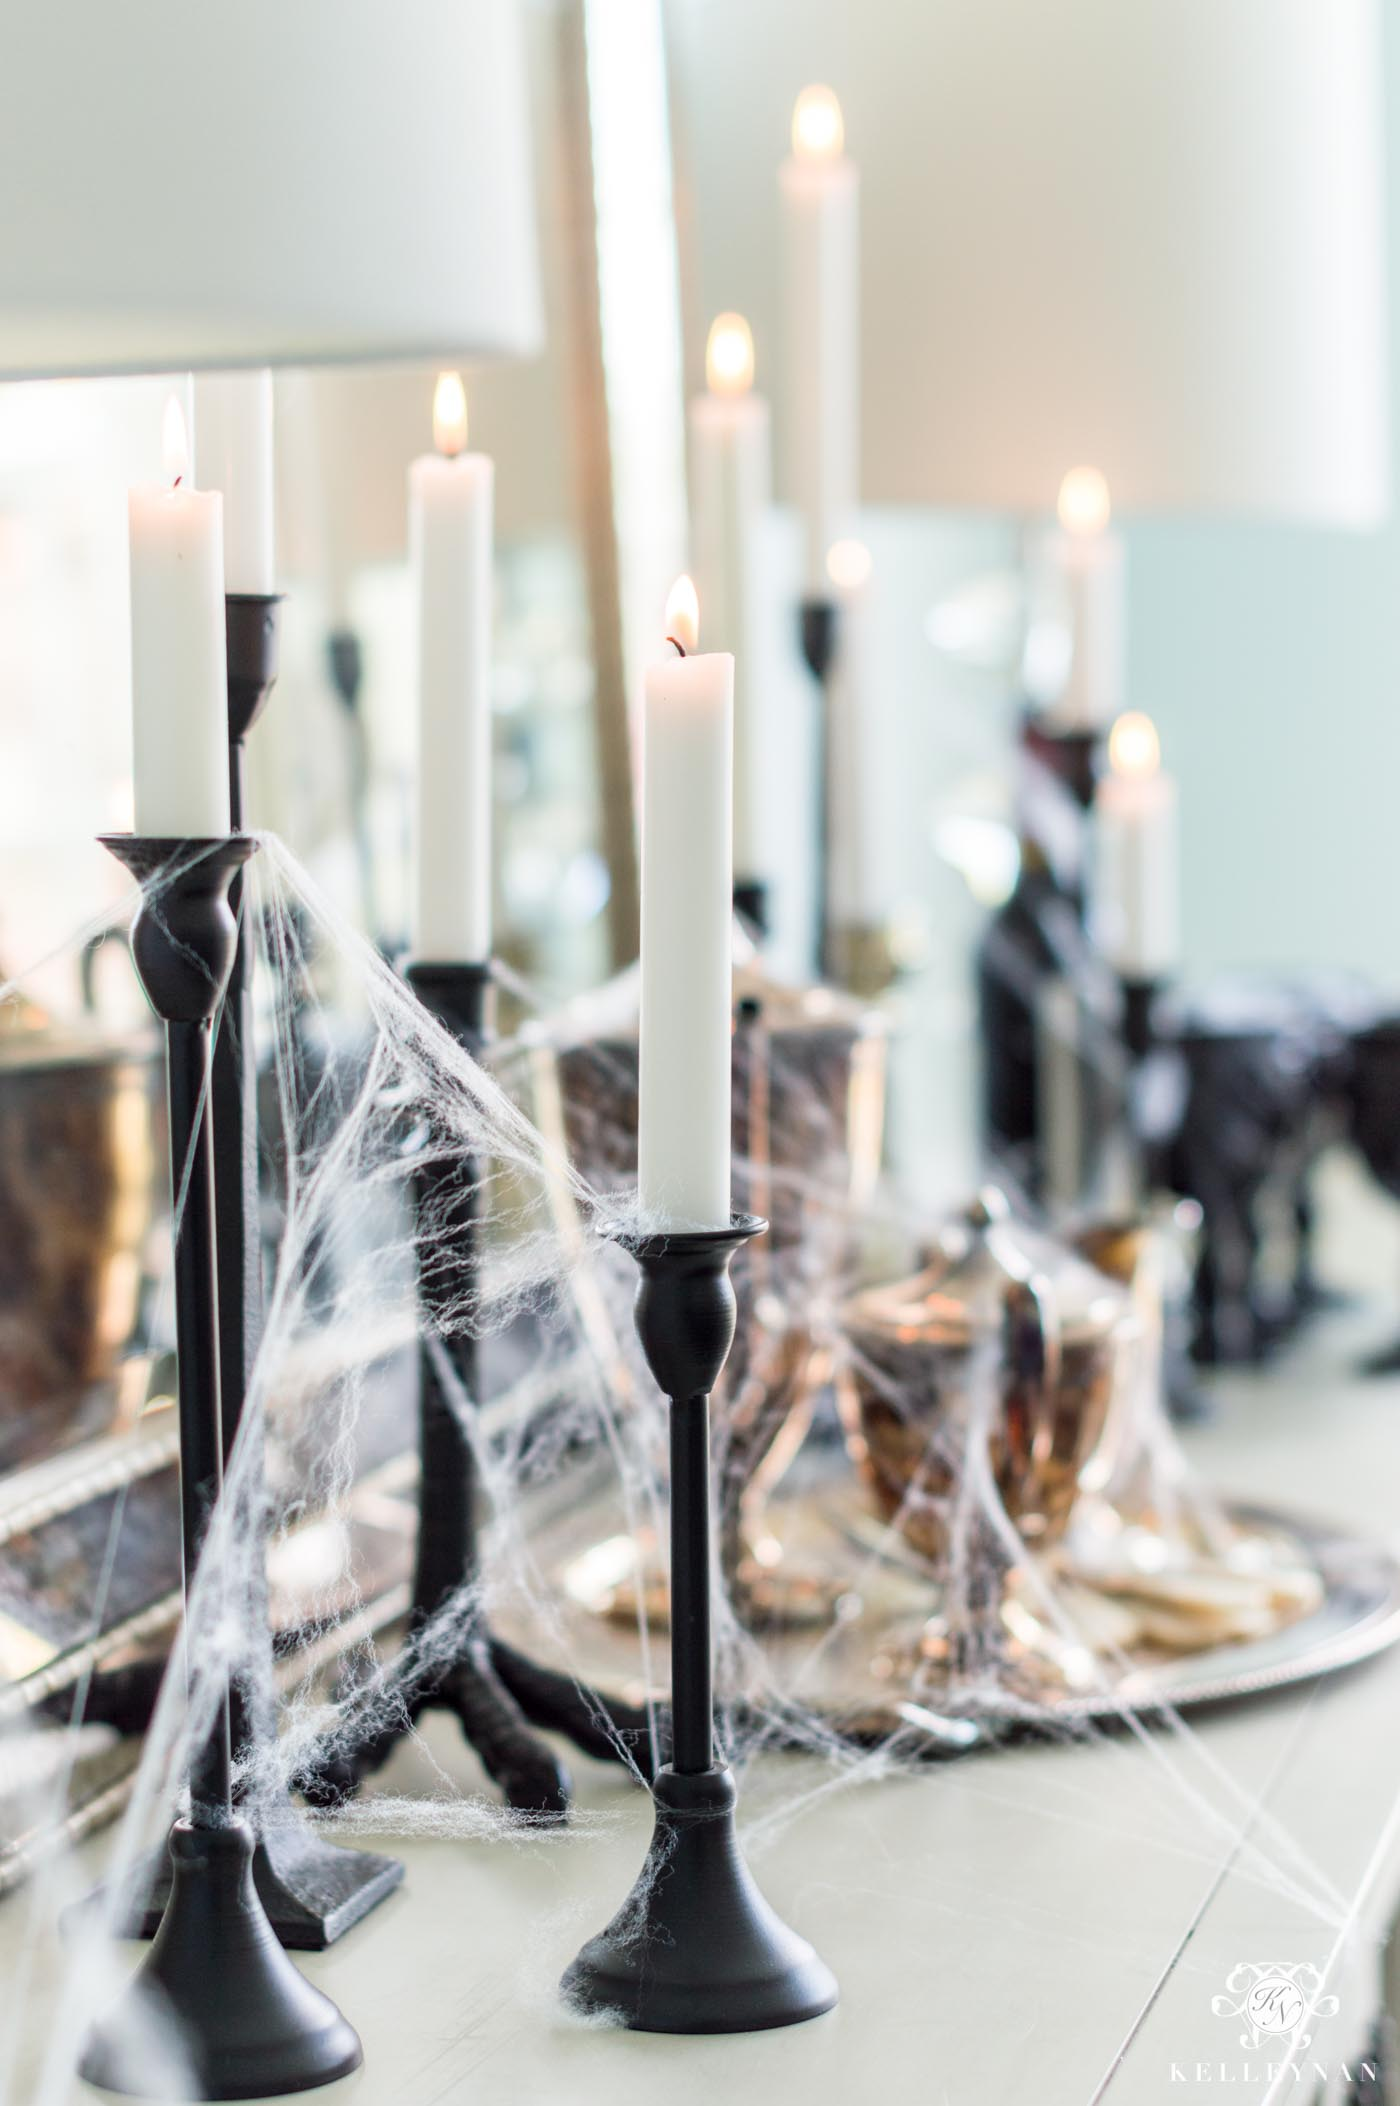 Spooky Halloween Decor Ideas with Candles and Cobwebs